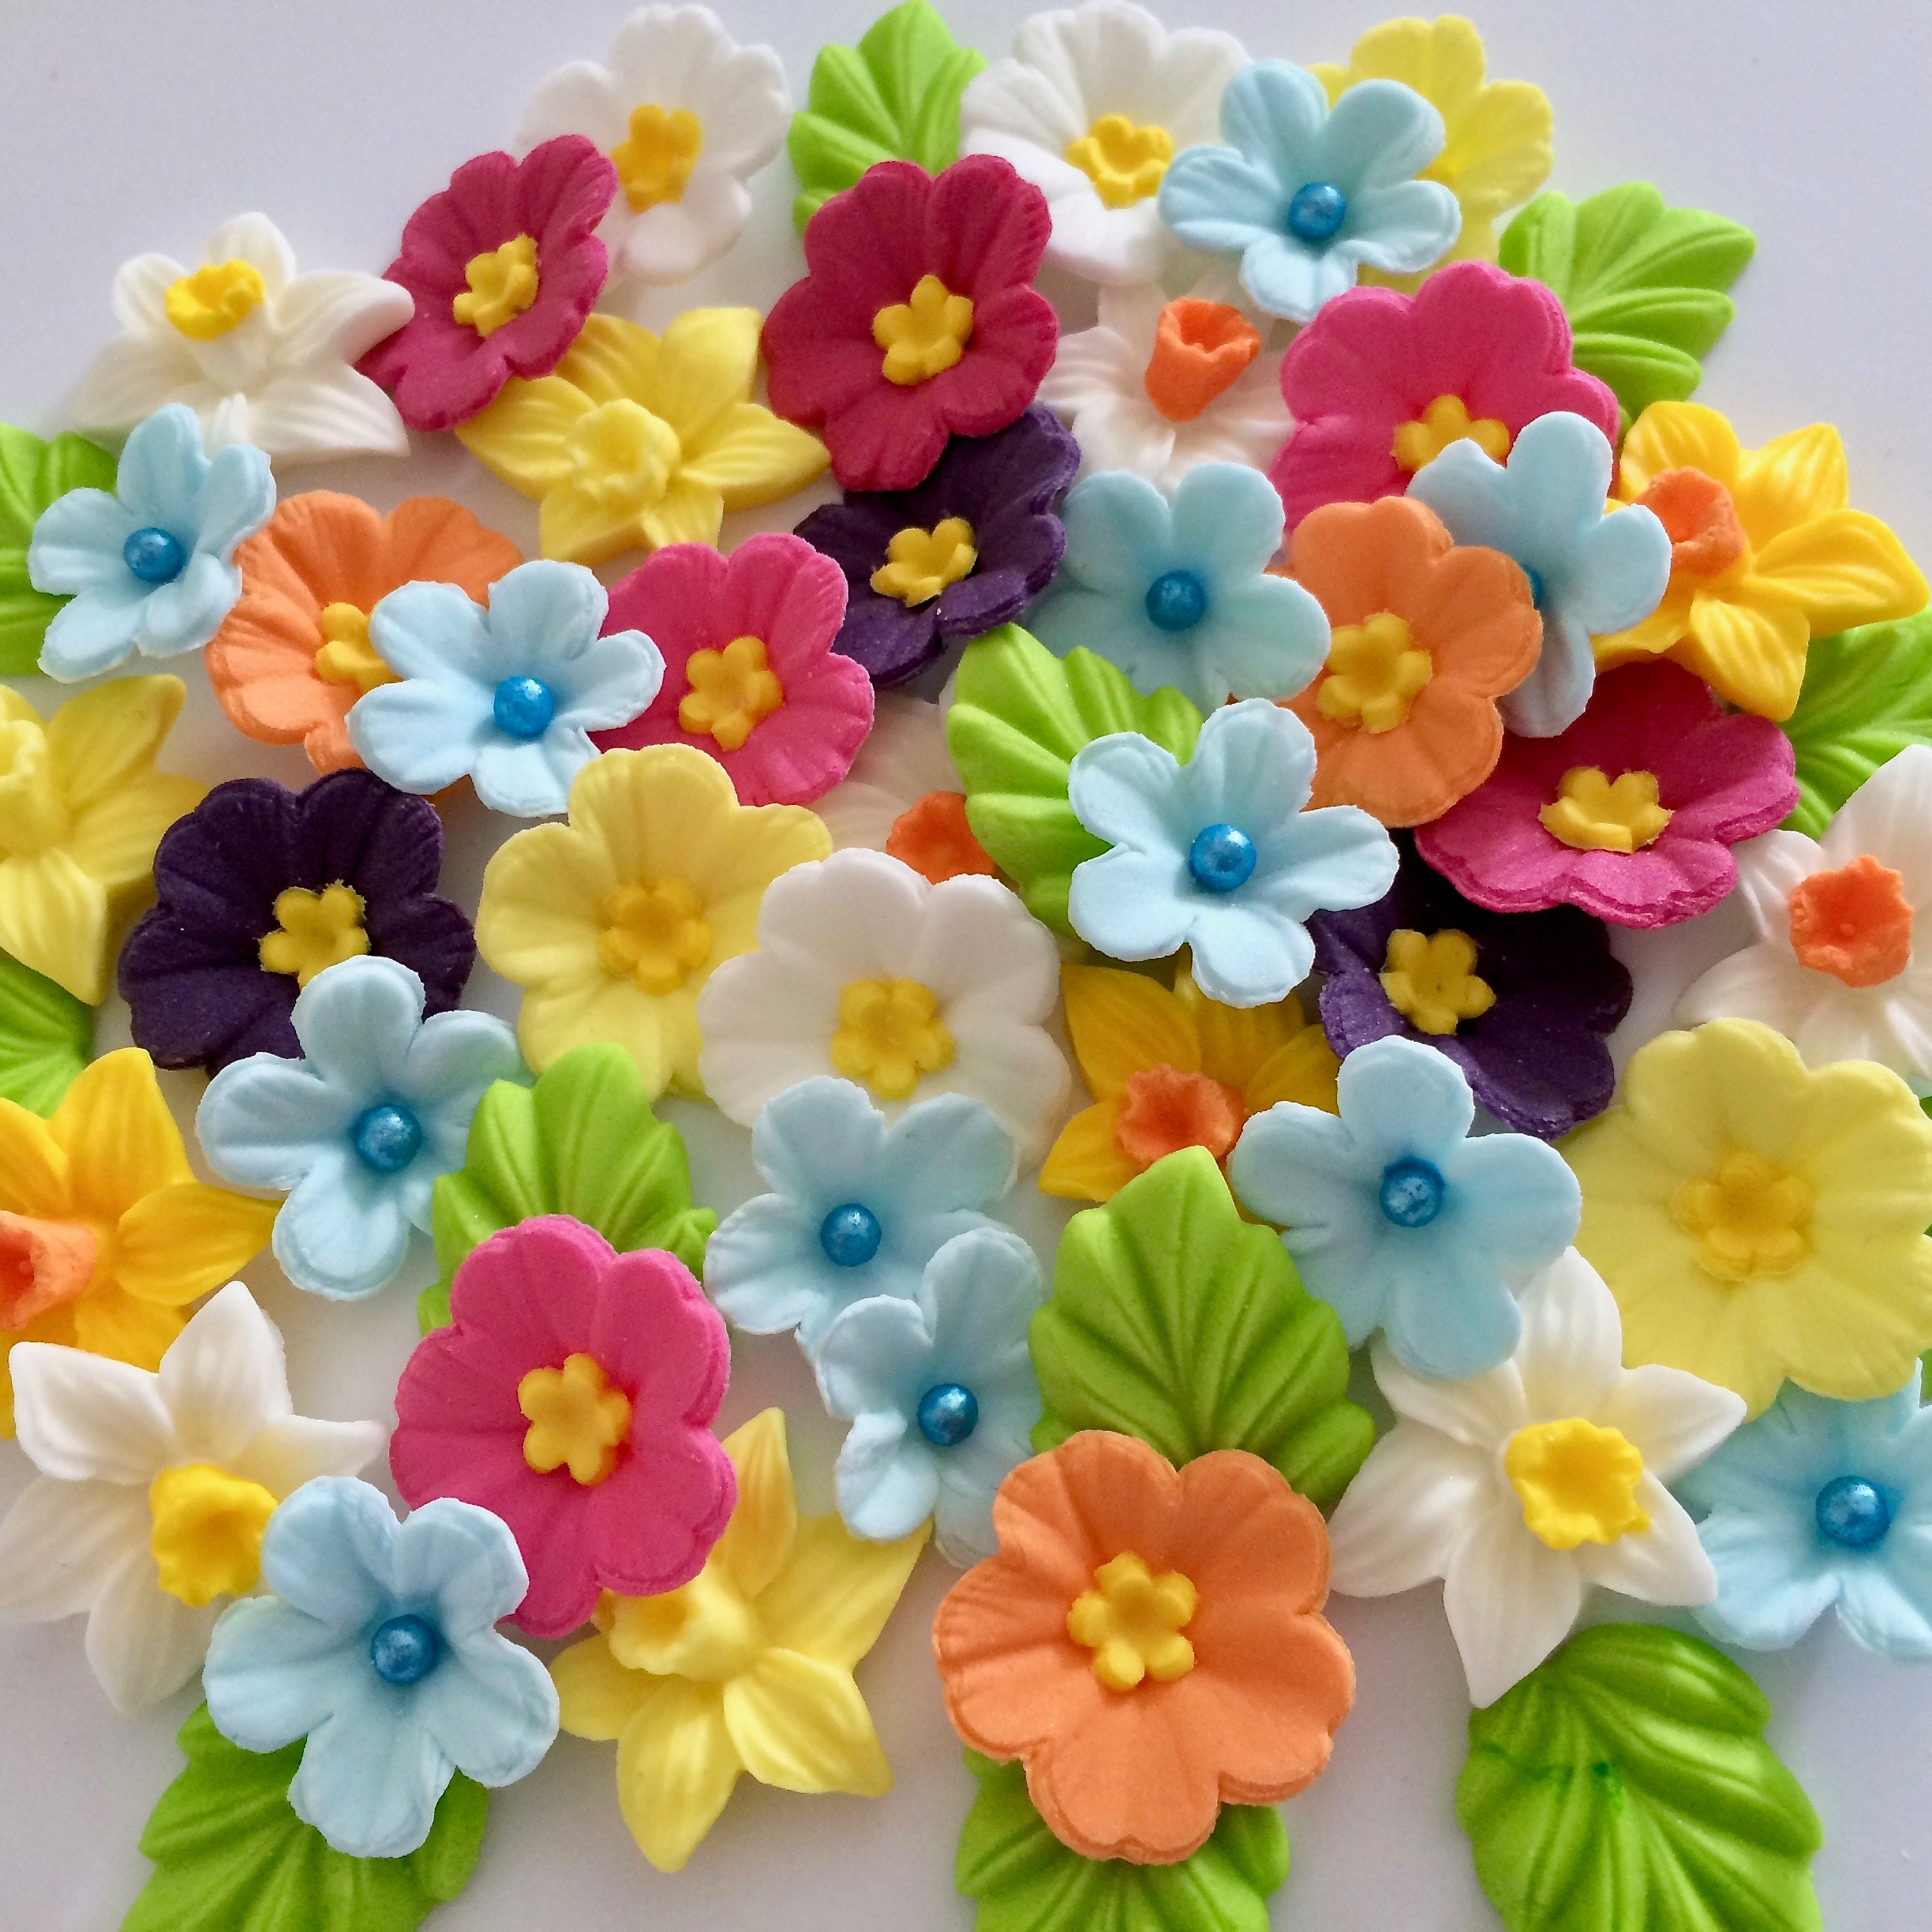 FLOWER MEDLEY Edible Sugar Flowers Cake Decorations ...